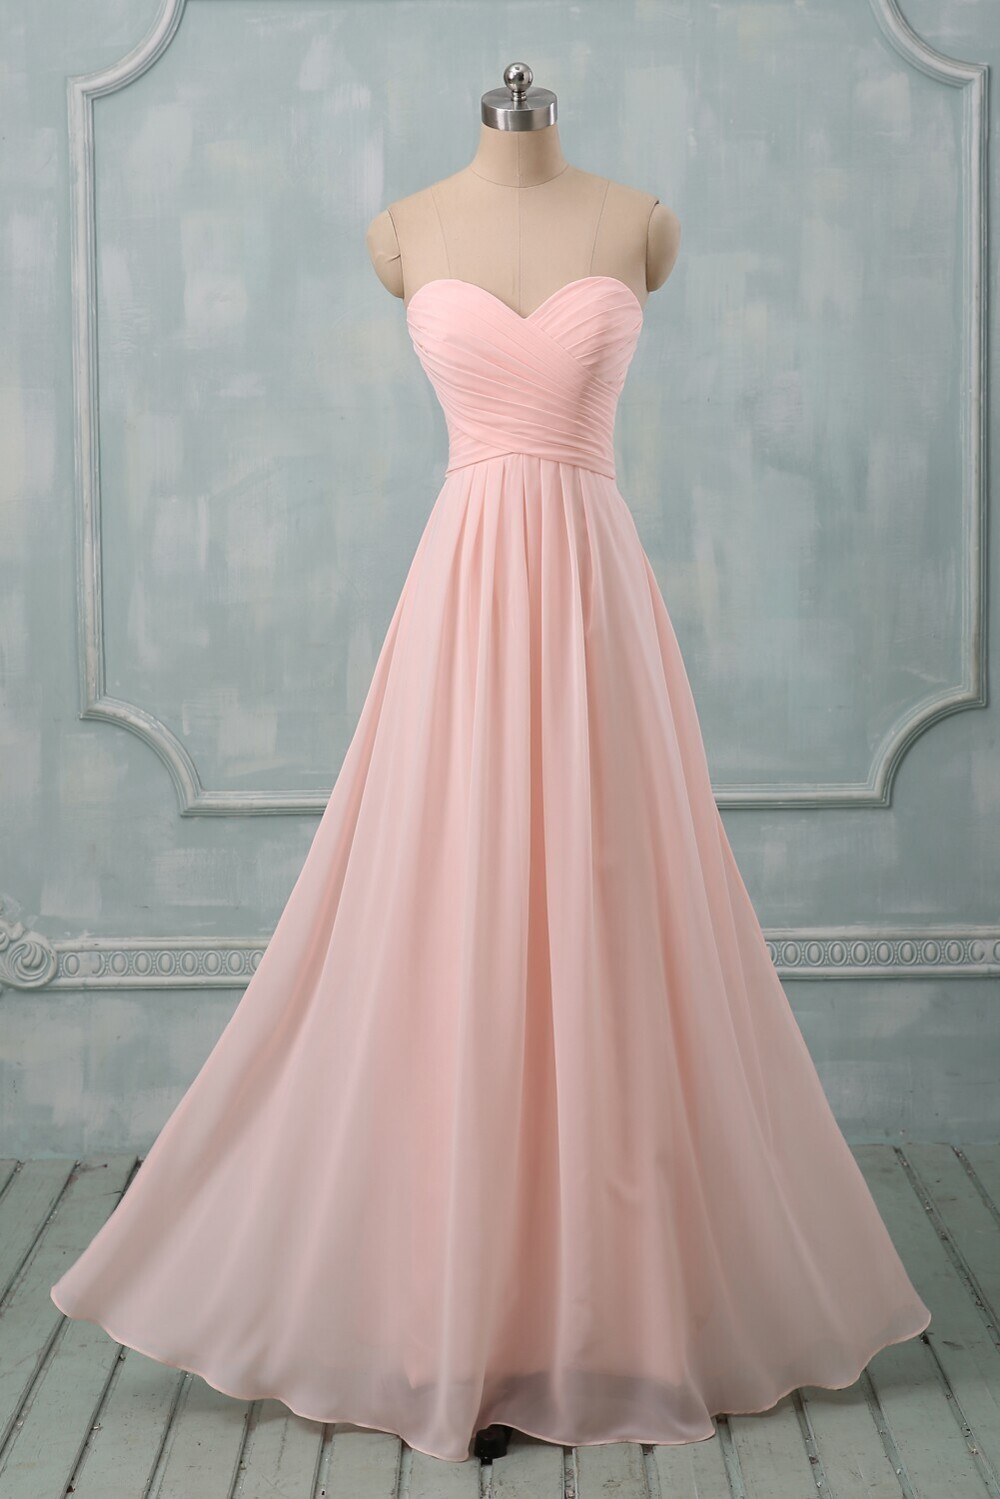 popular pastel colors dresses buy cheap pastel colors With pastel color dress for wedding